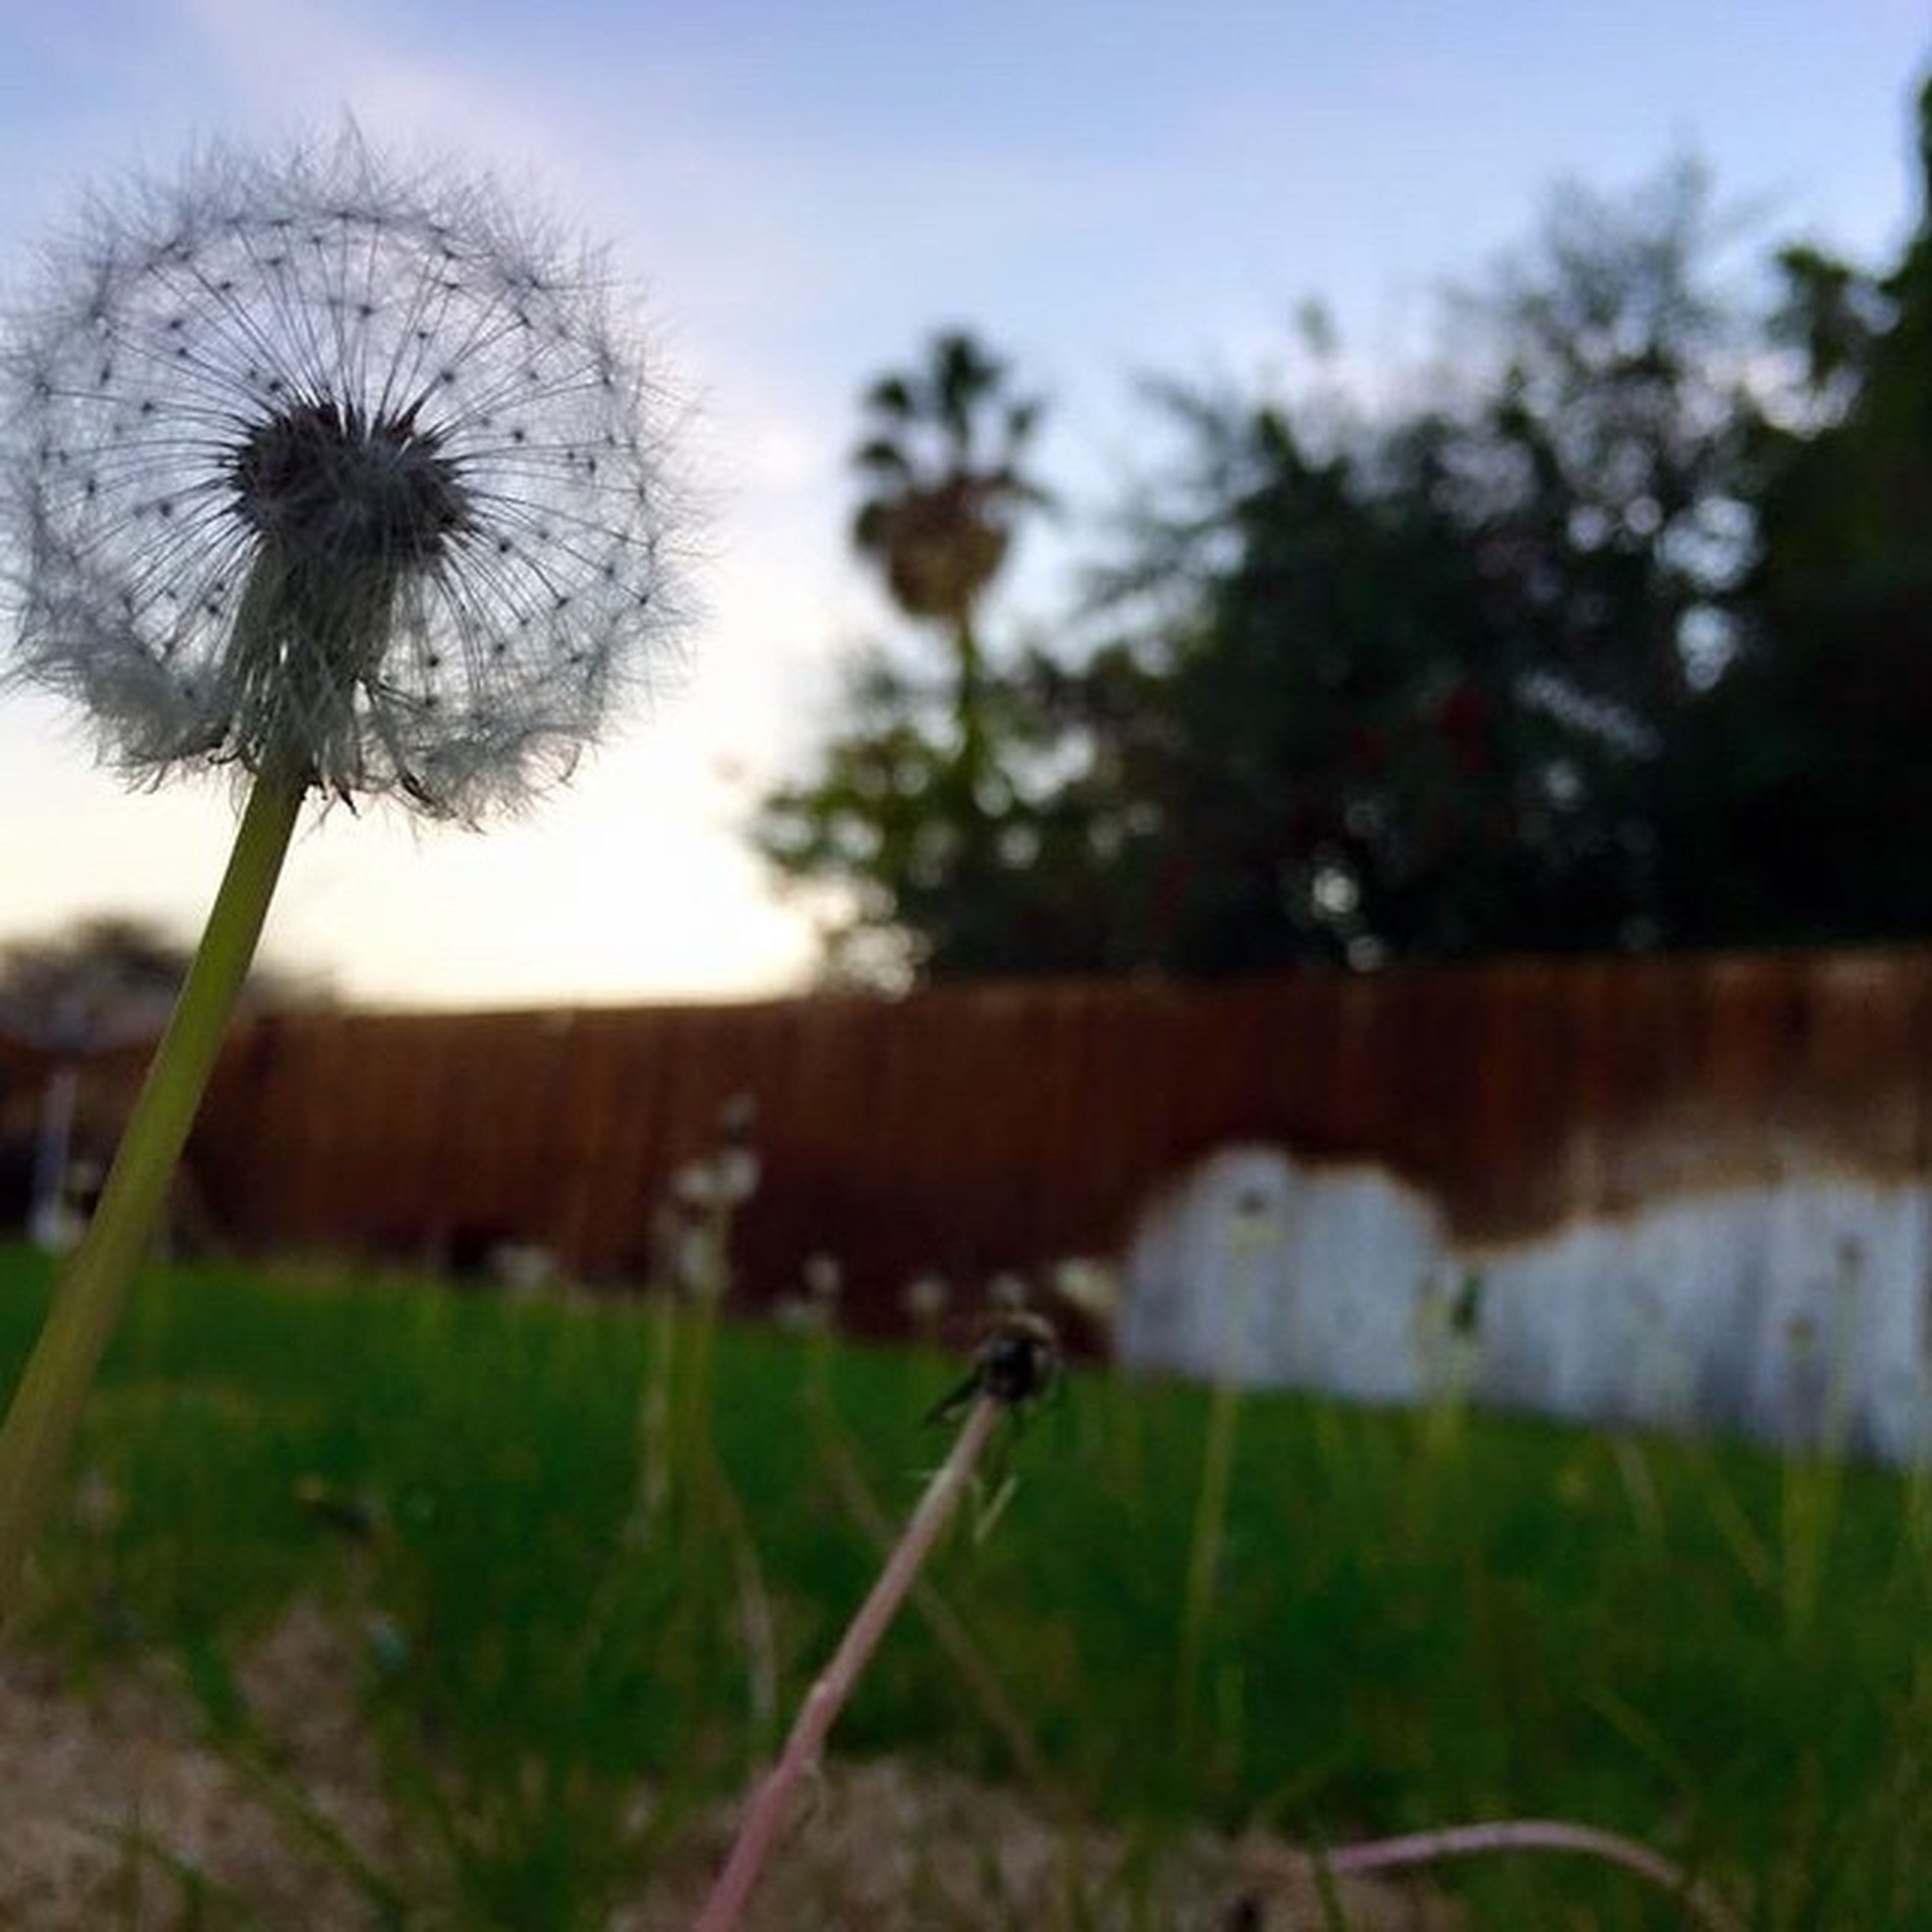 flower, focus on foreground, growth, stem, fragility, field, dandelion, plant, nature, close-up, sky, freshness, selective focus, beauty in nature, grass, day, outdoors, no people, wildflower, blooming